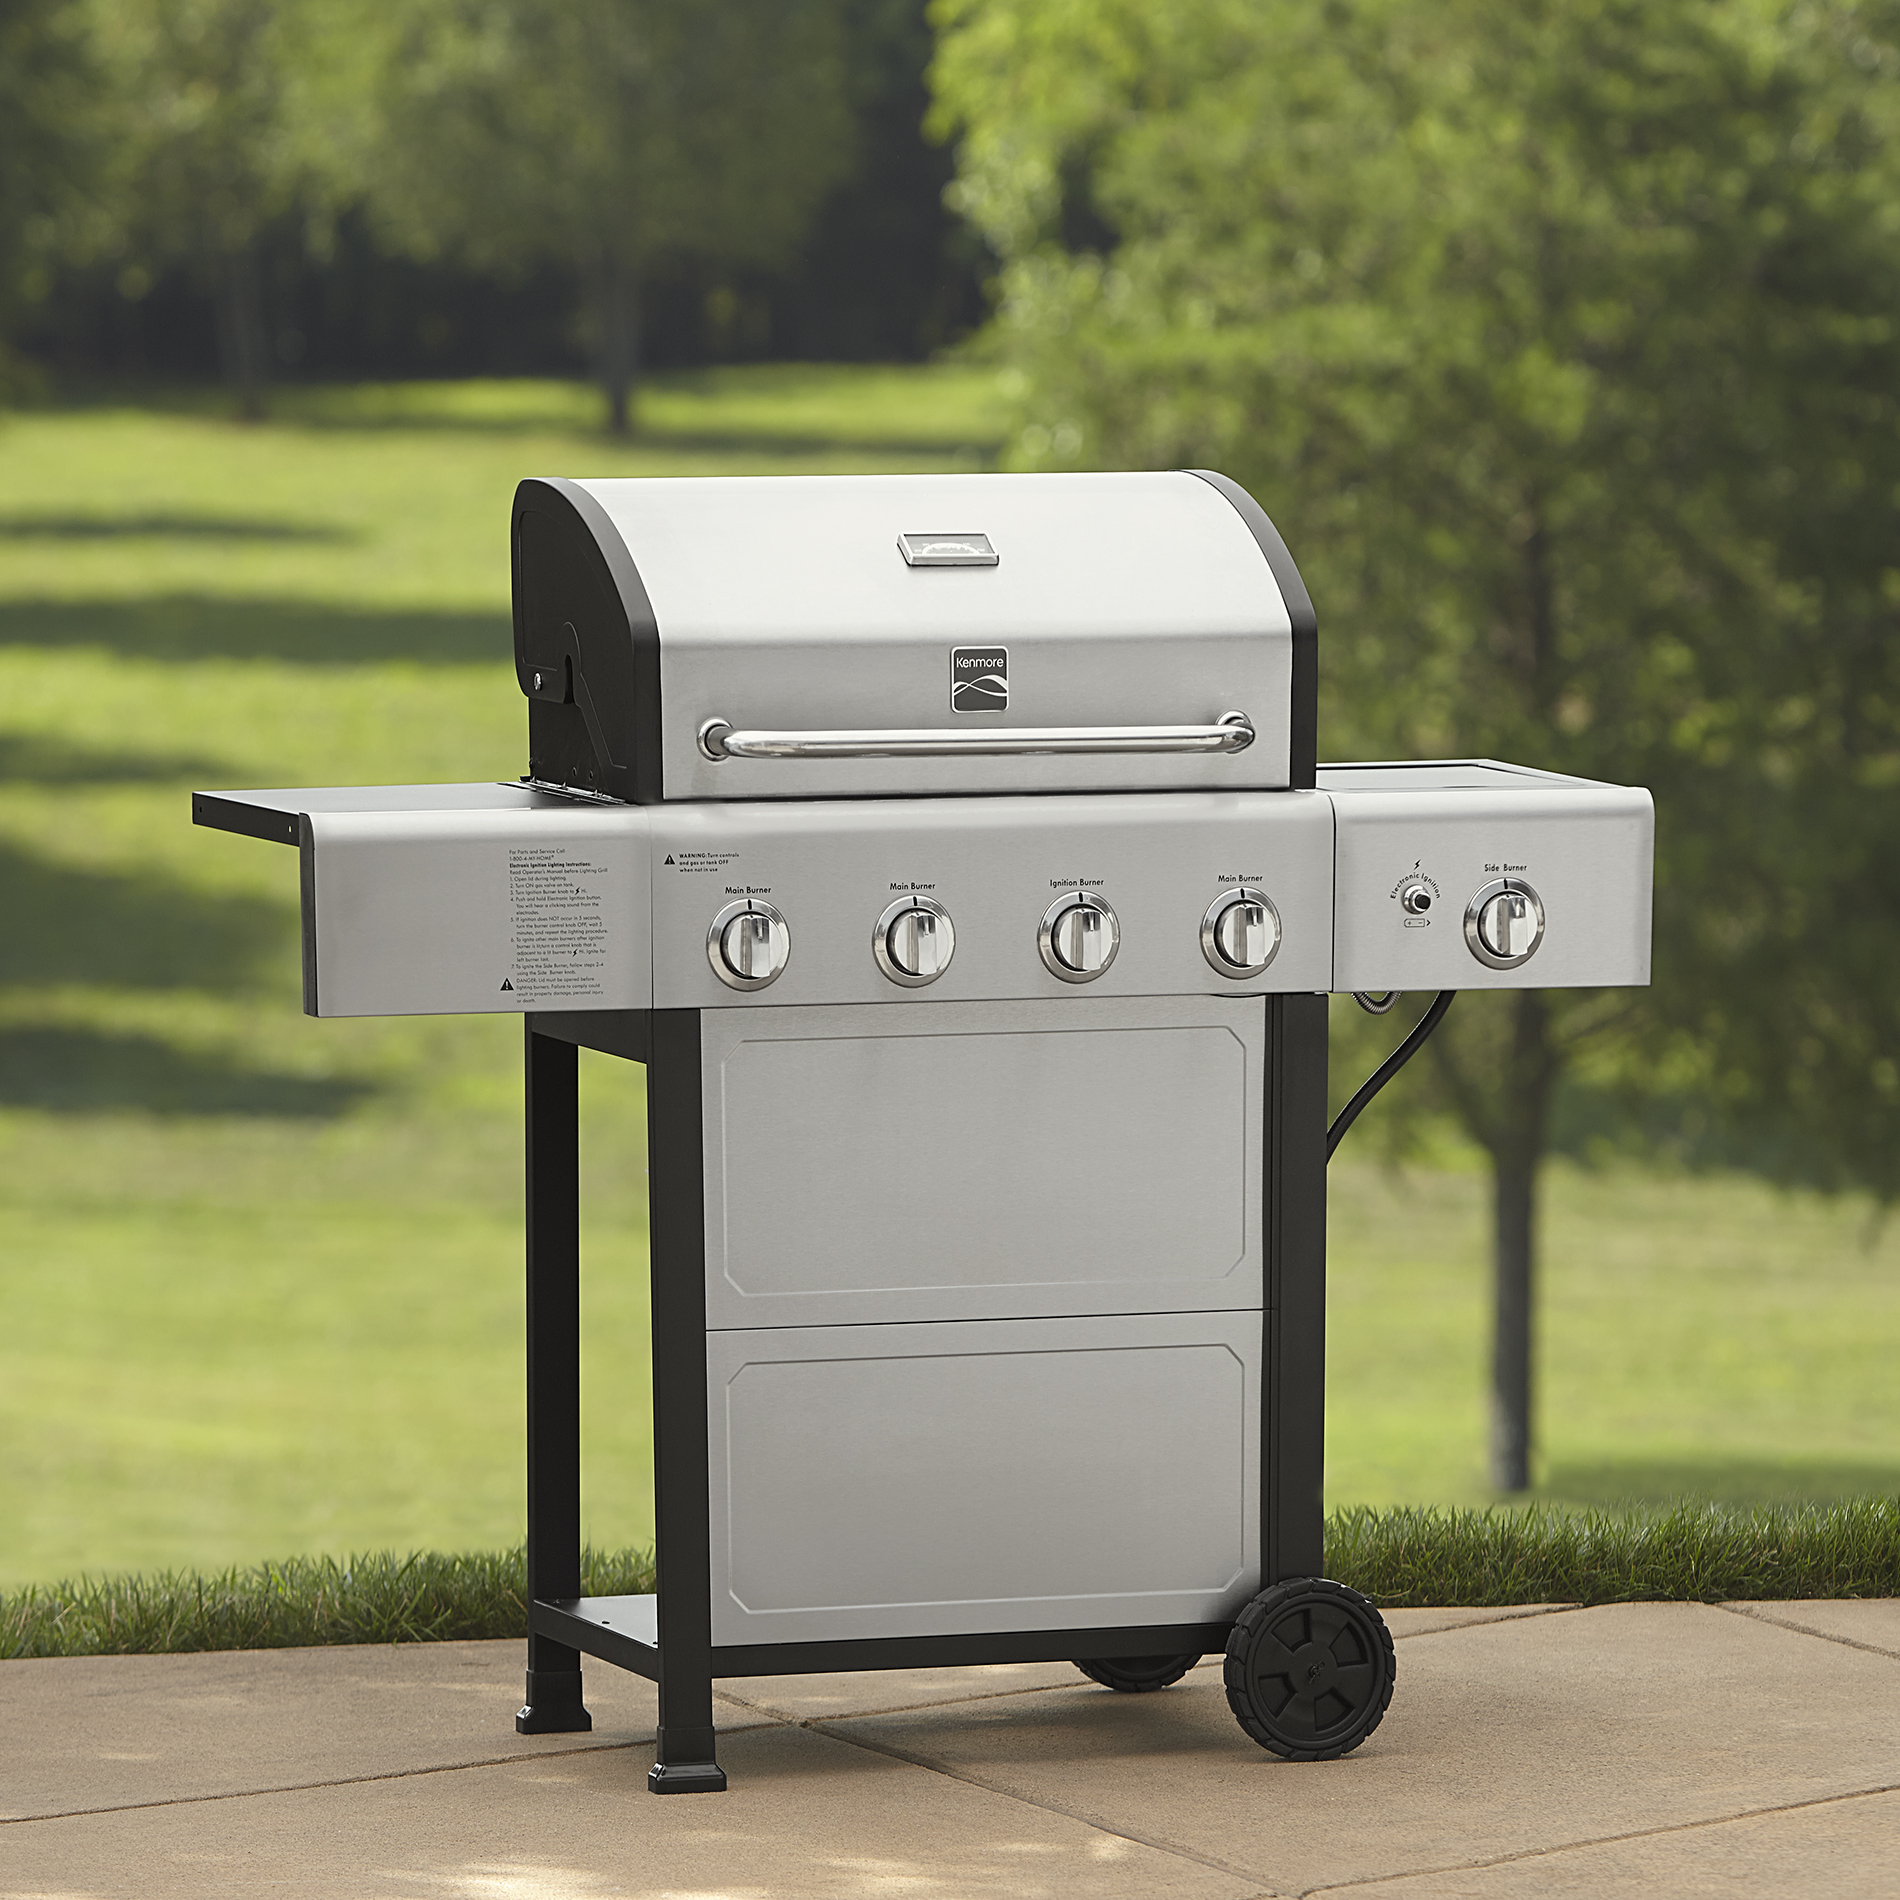 Kenmore 4 Burner Gas Grill with Stainless Steel